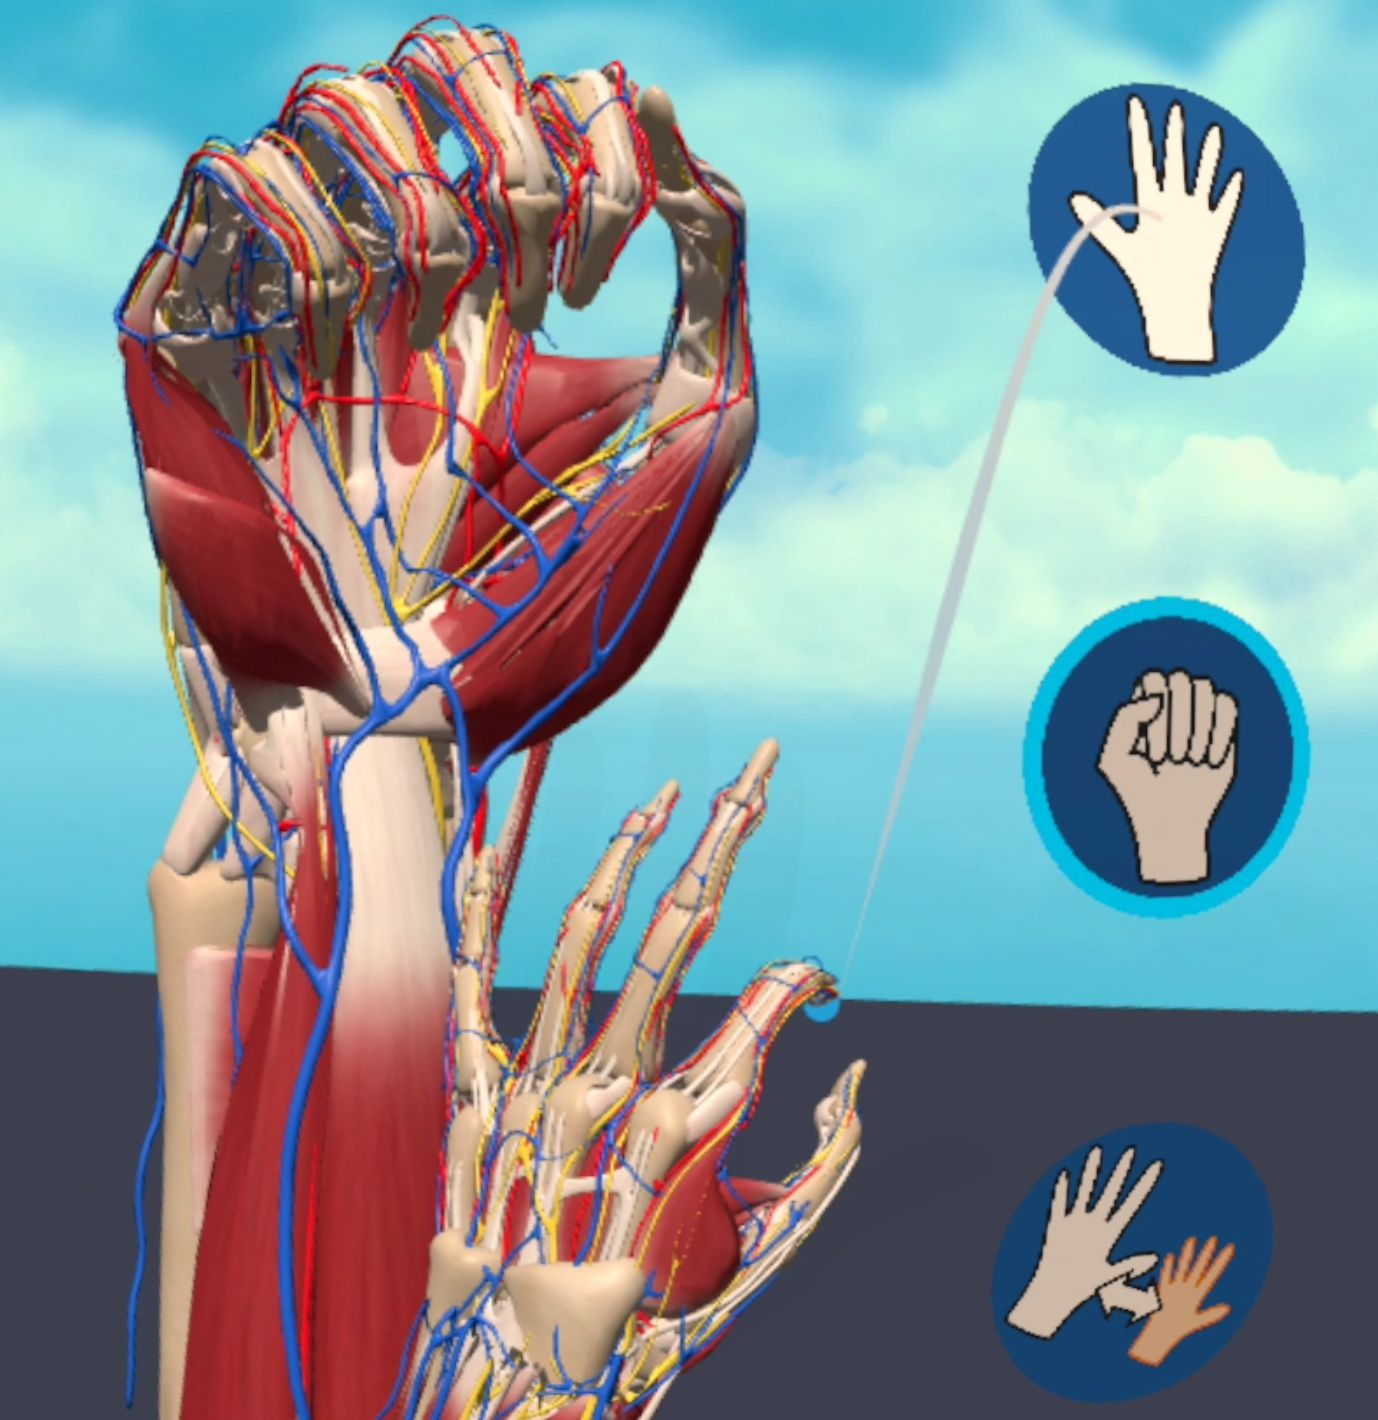 Learning Hand Anatomy with Sense of Embodiment